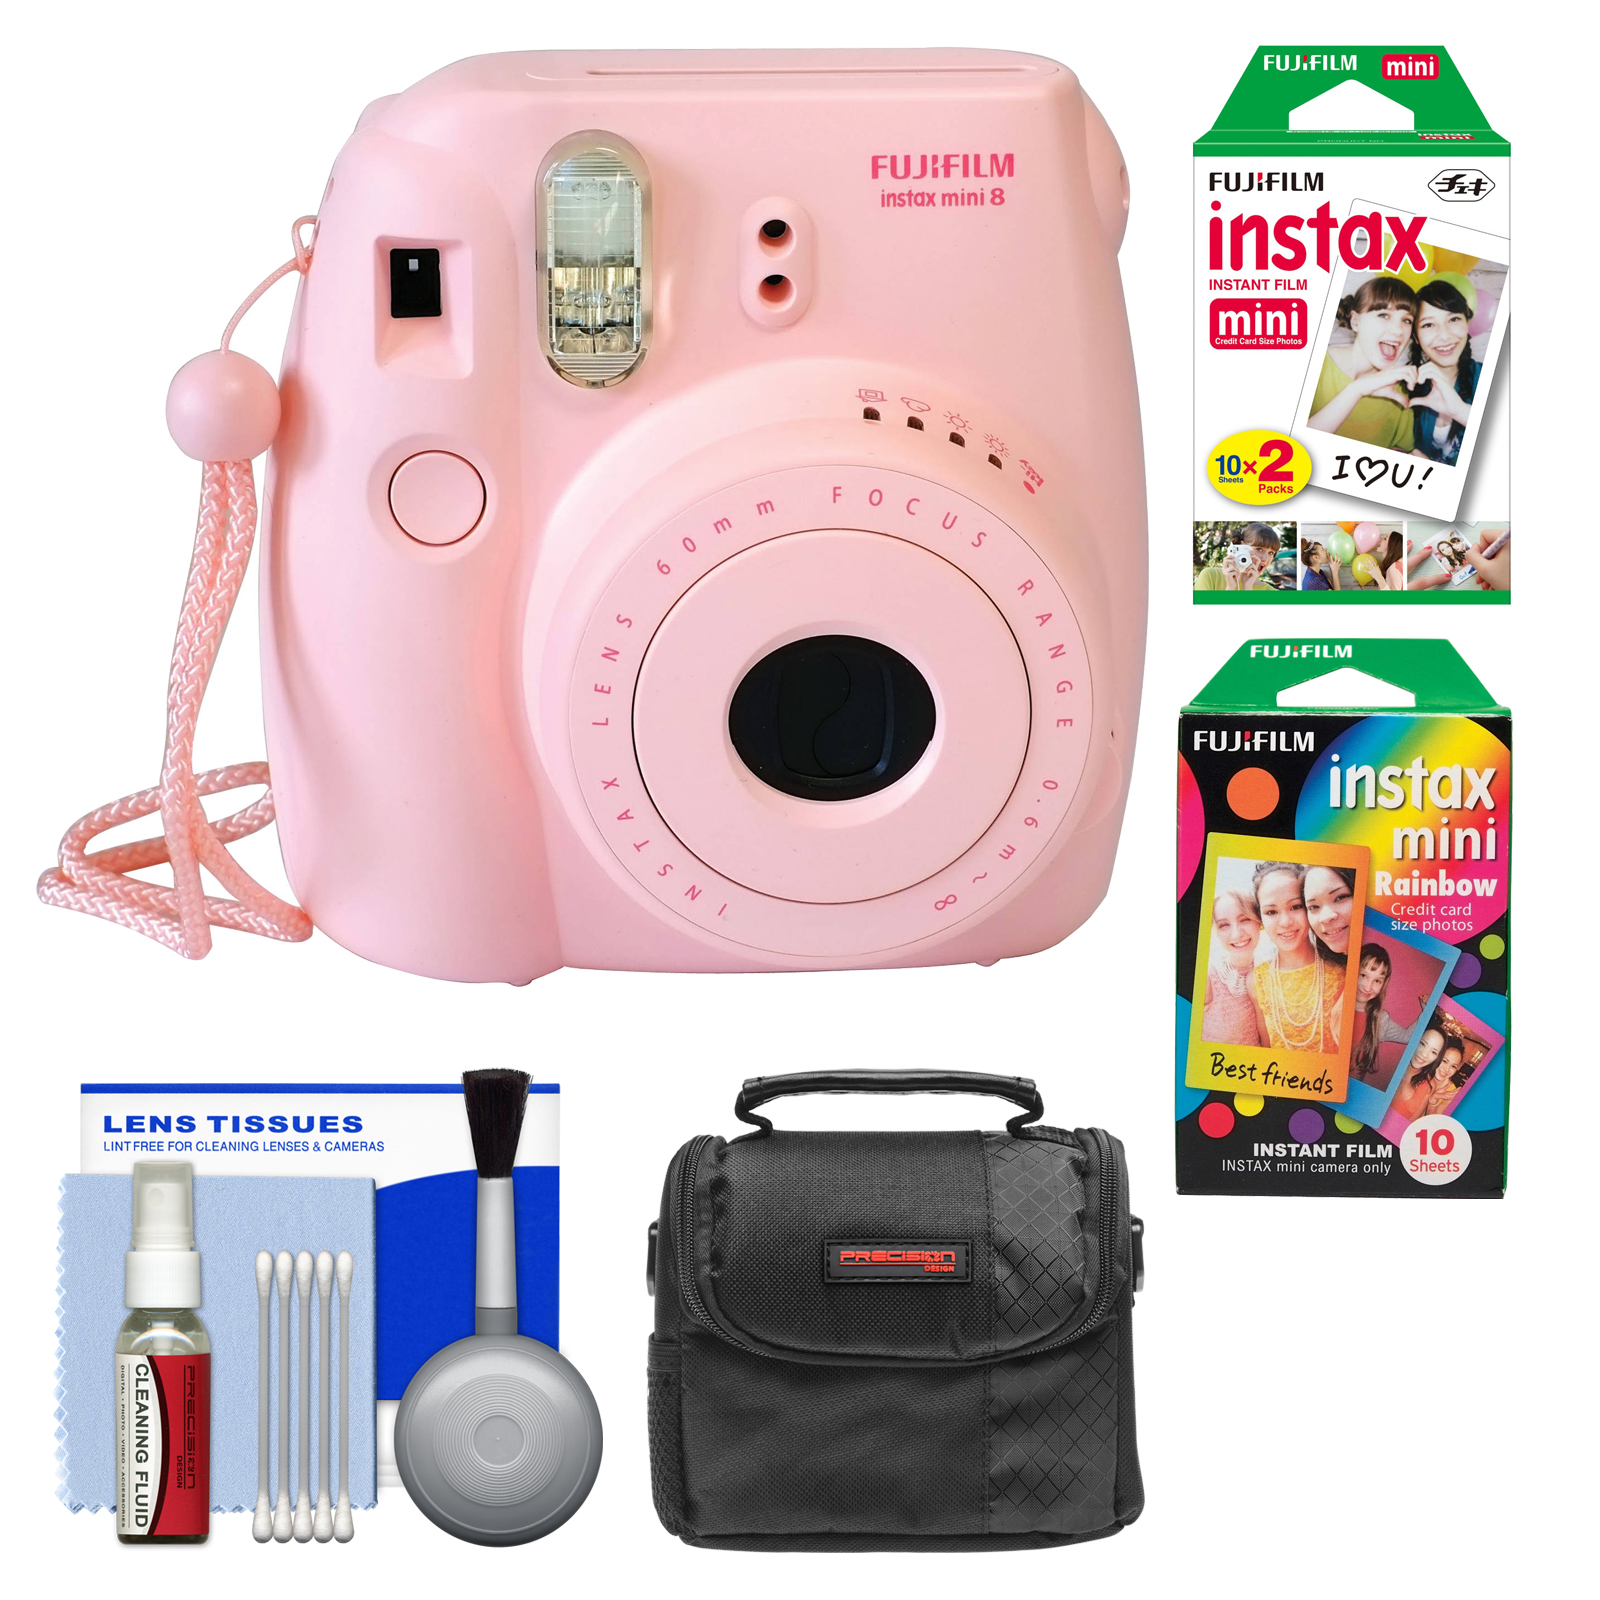 Fujifilm Instax Mini 8 Instant Film Camera Pink With Instant Film